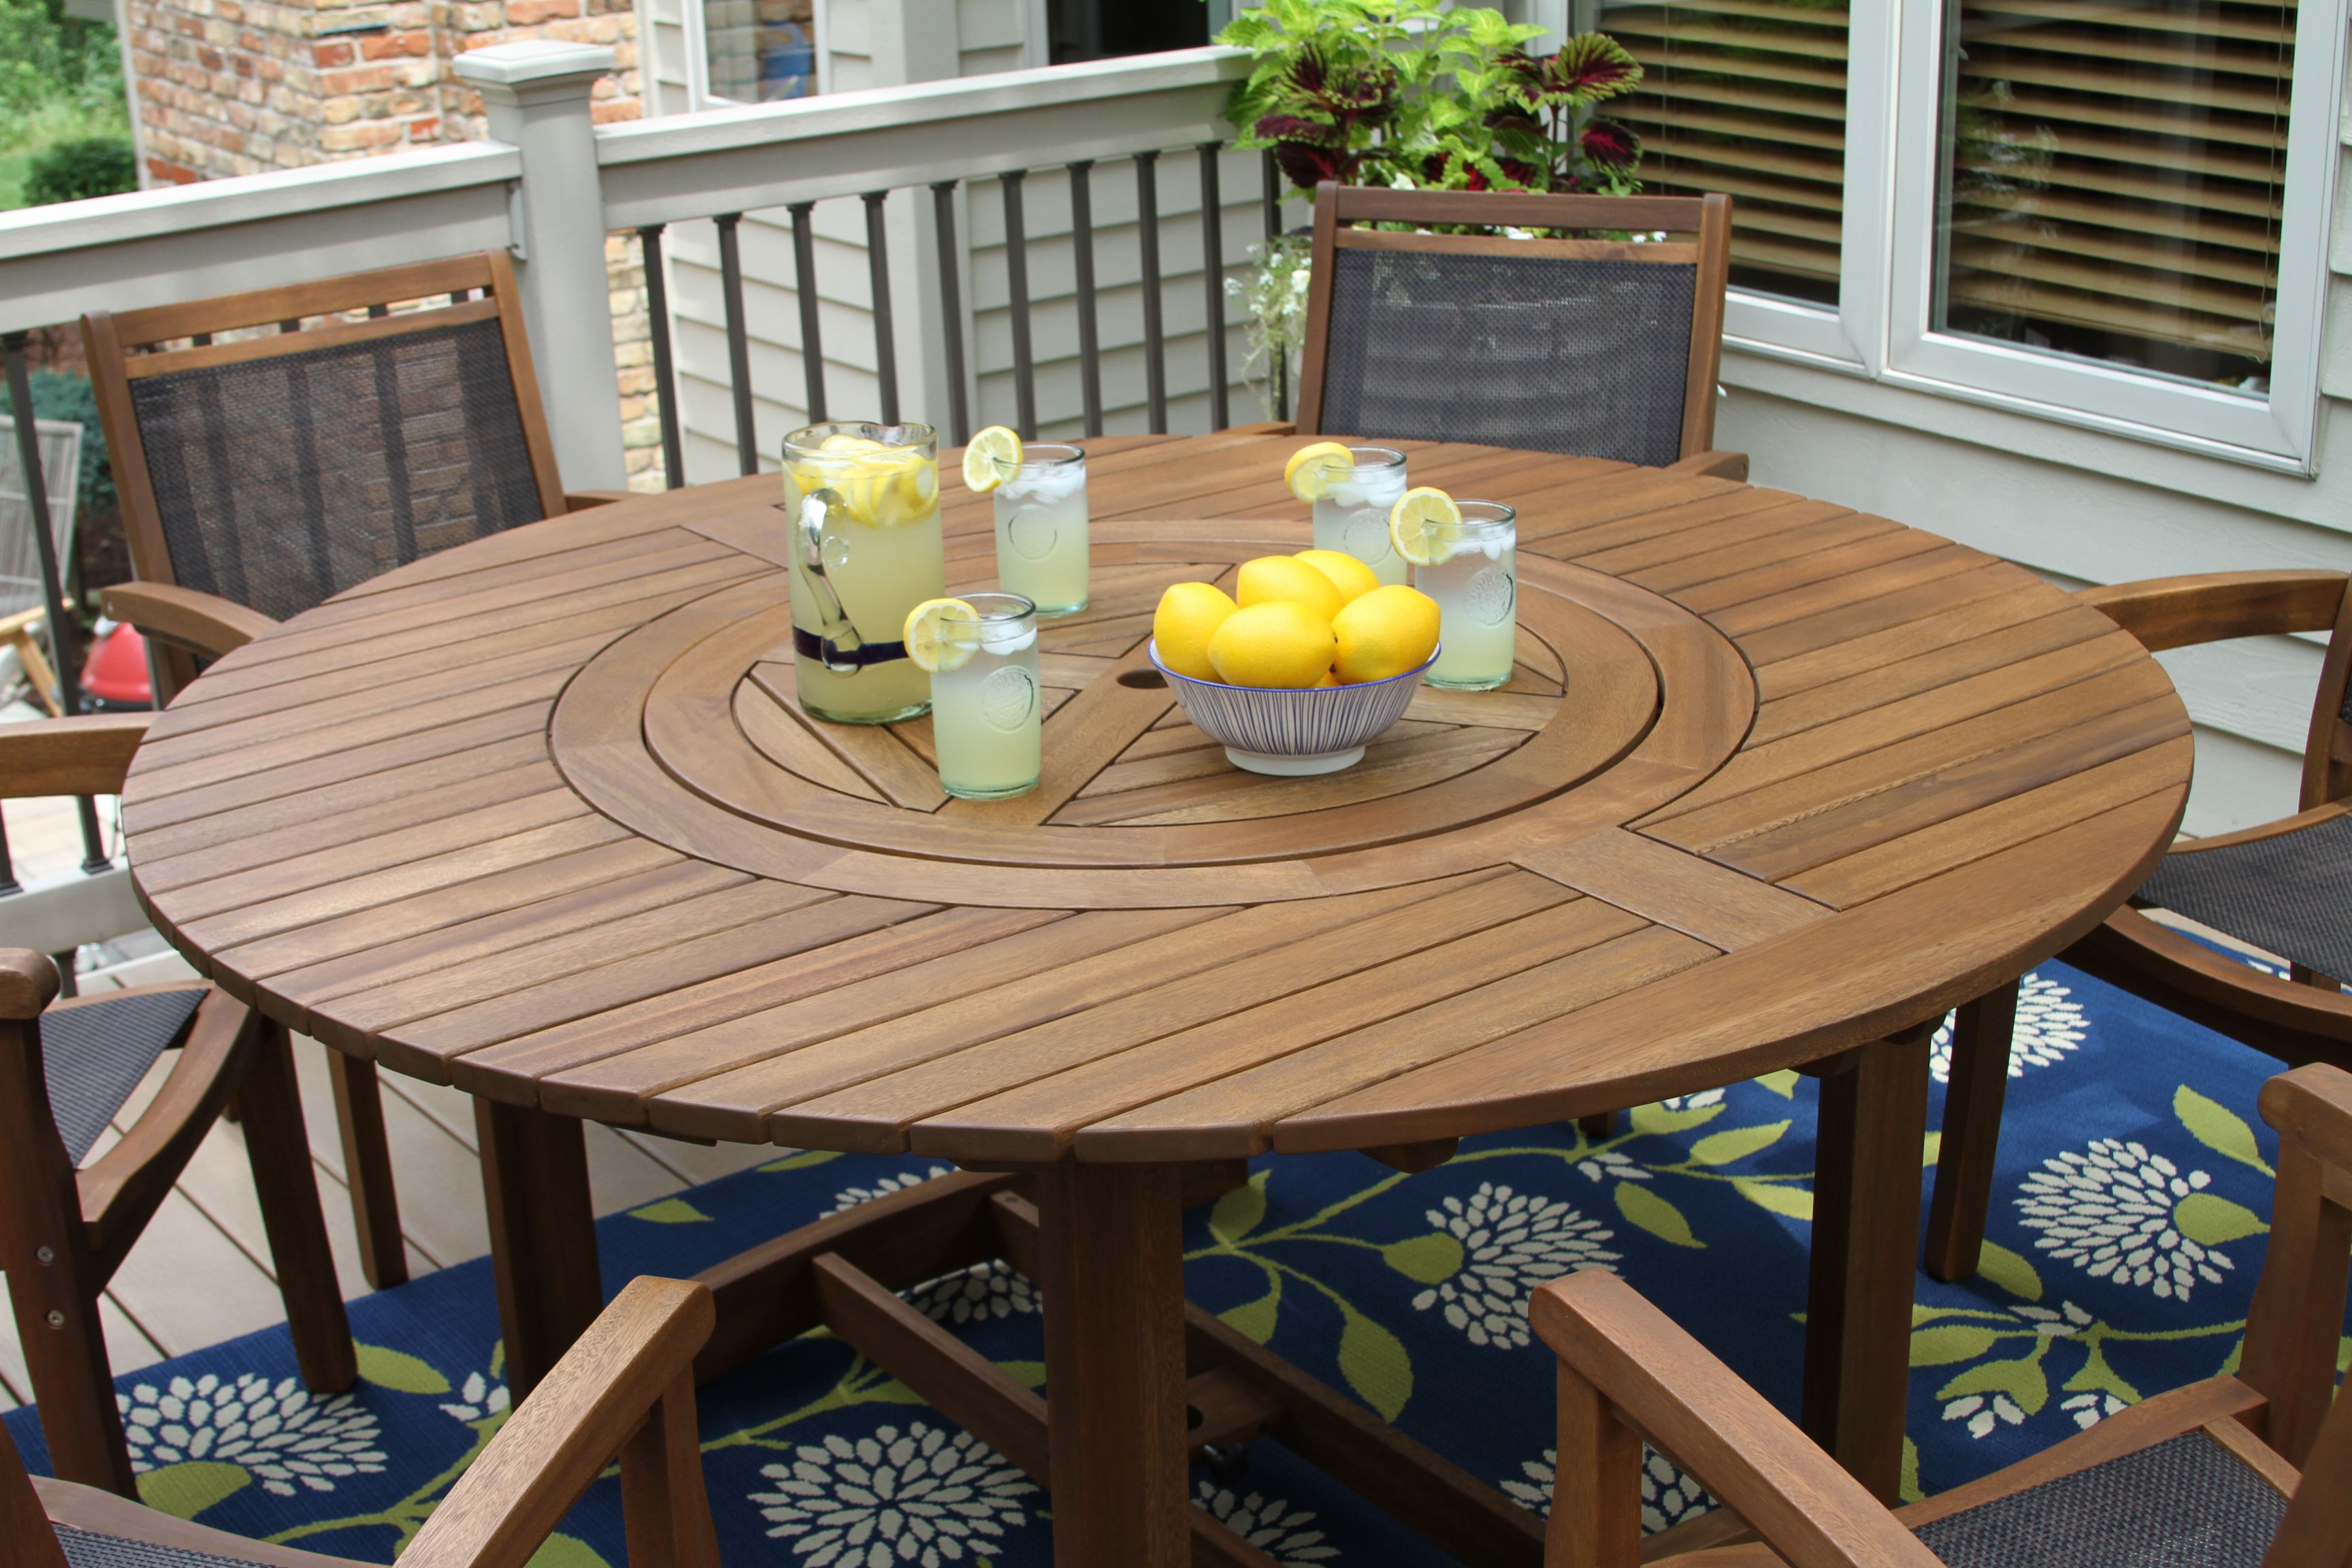 Eucalyptus Lazy Susan Large Round Dining Table Round Patio Table Round Outdoor Dining Table Patio Dining Table